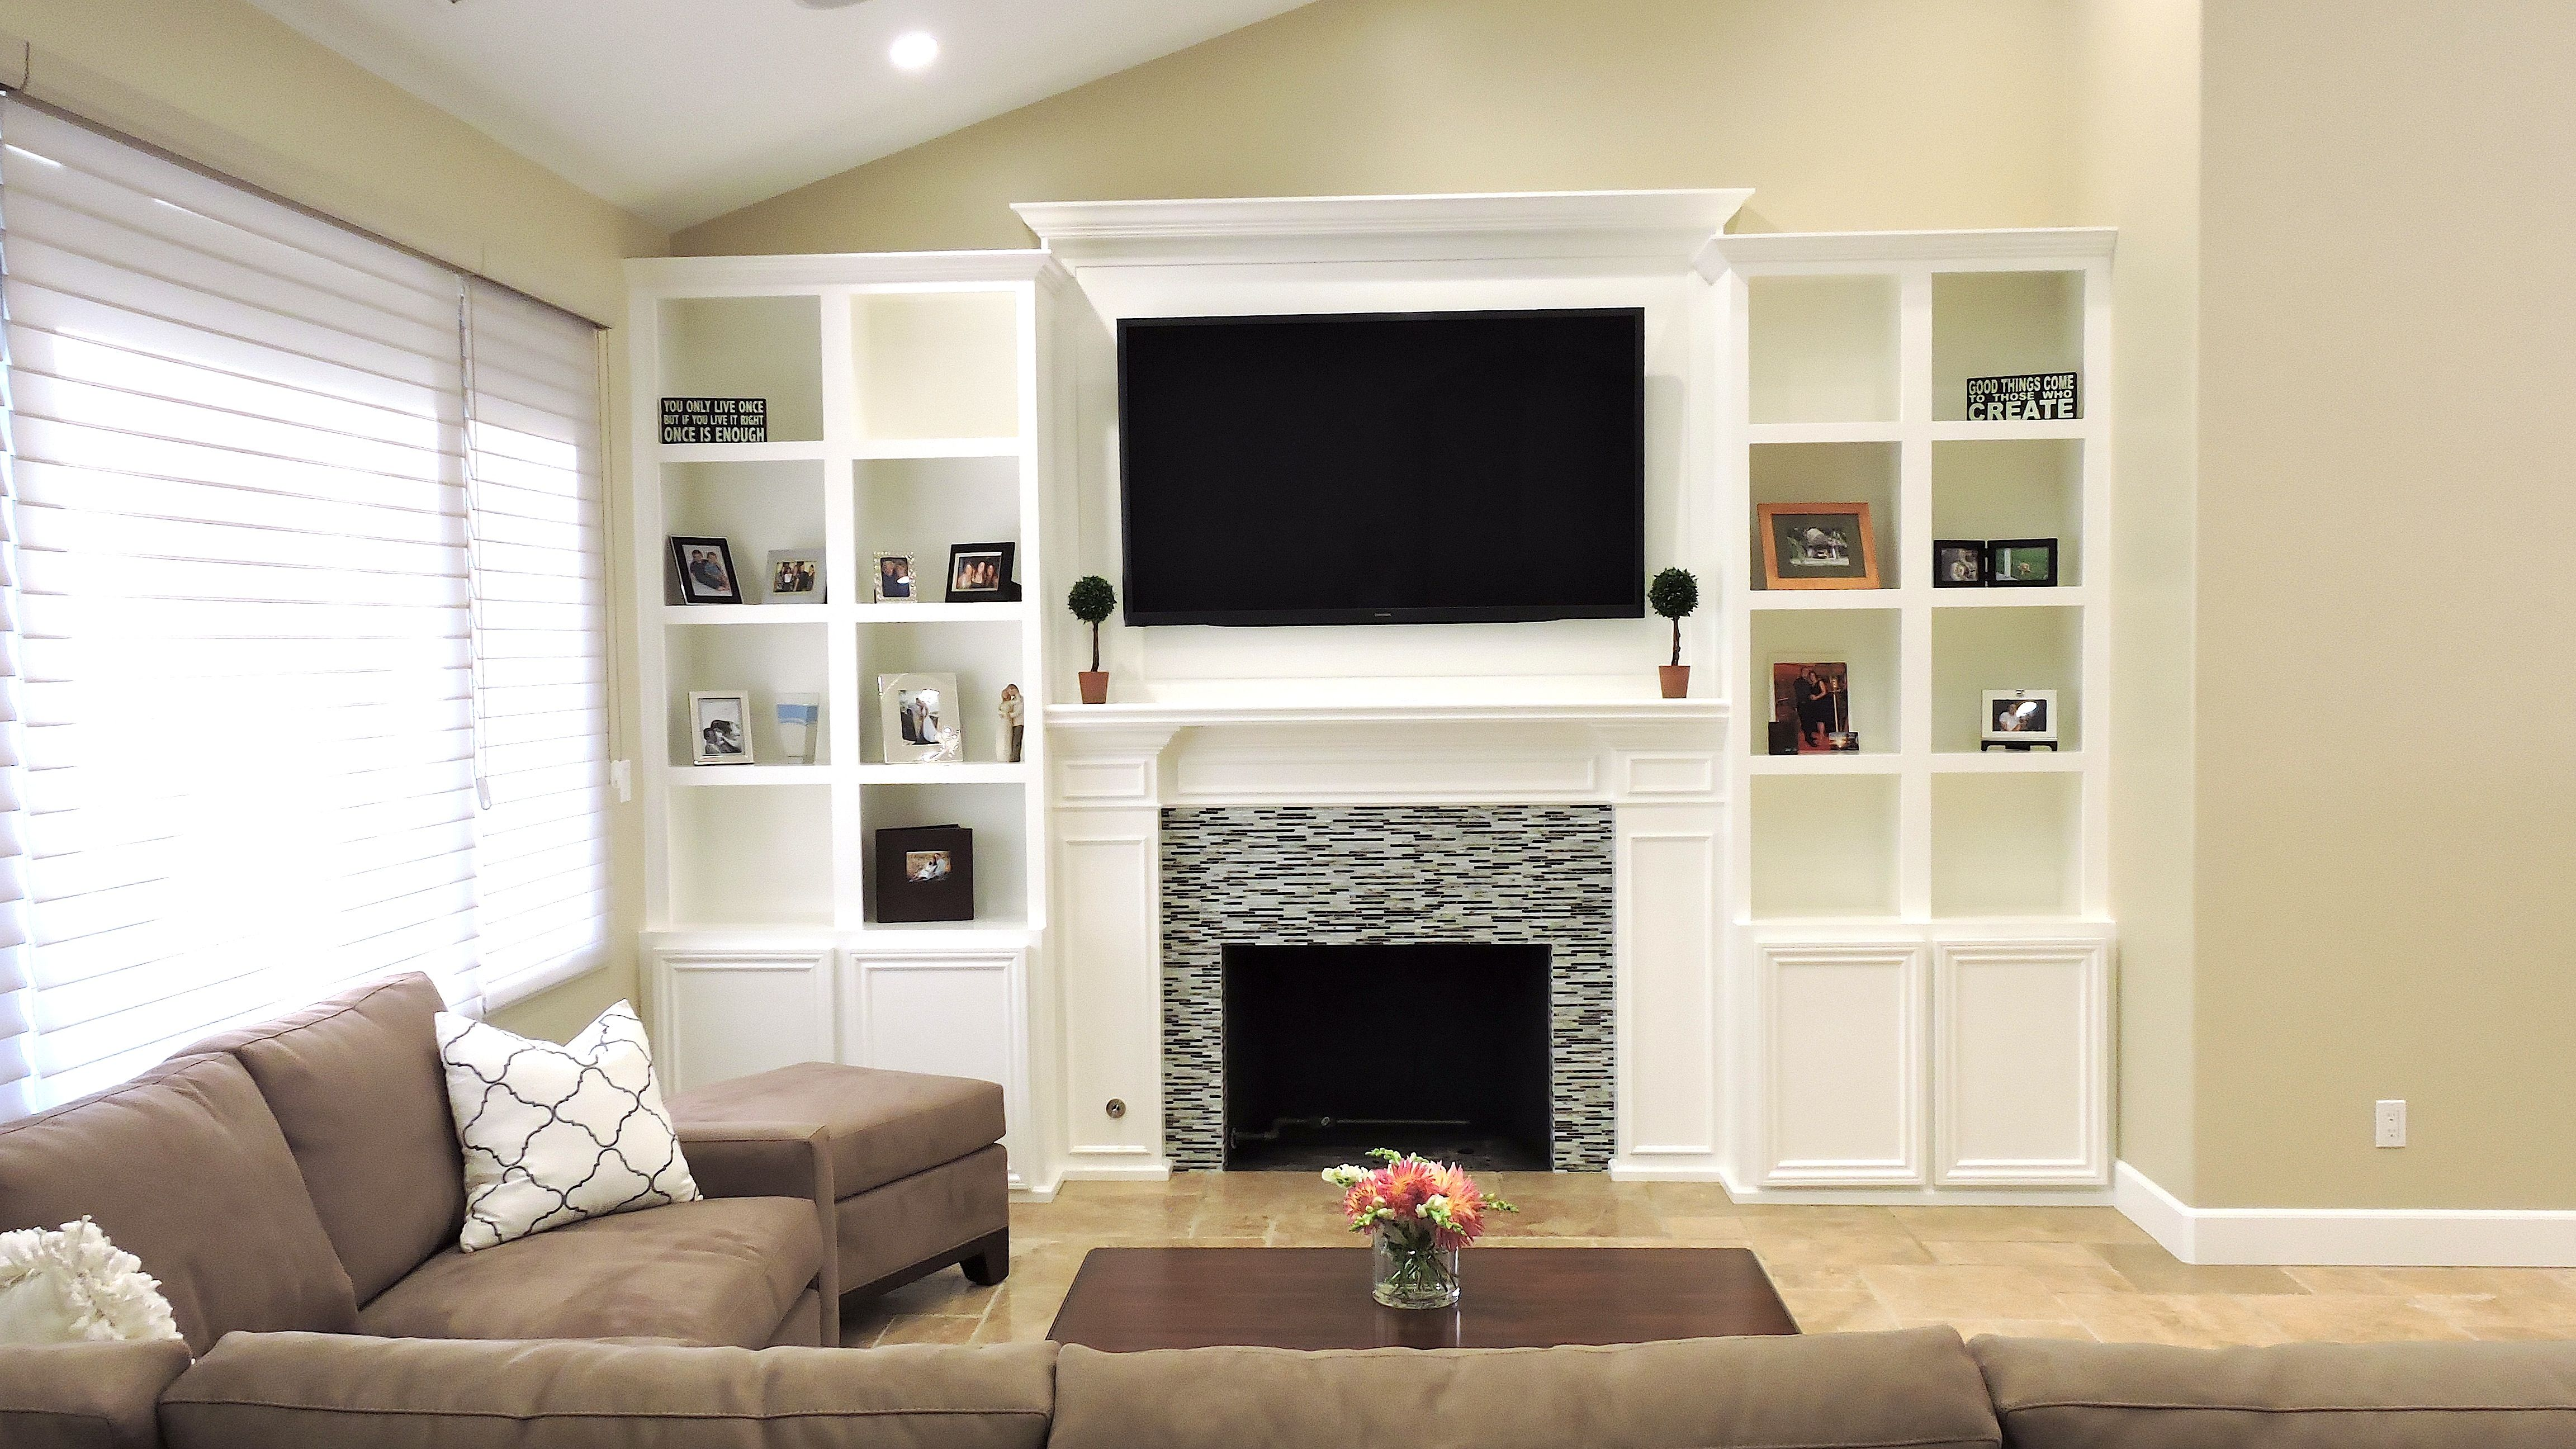 Living Room, Fireplace, Glass Tile Surround, White Built-in ...